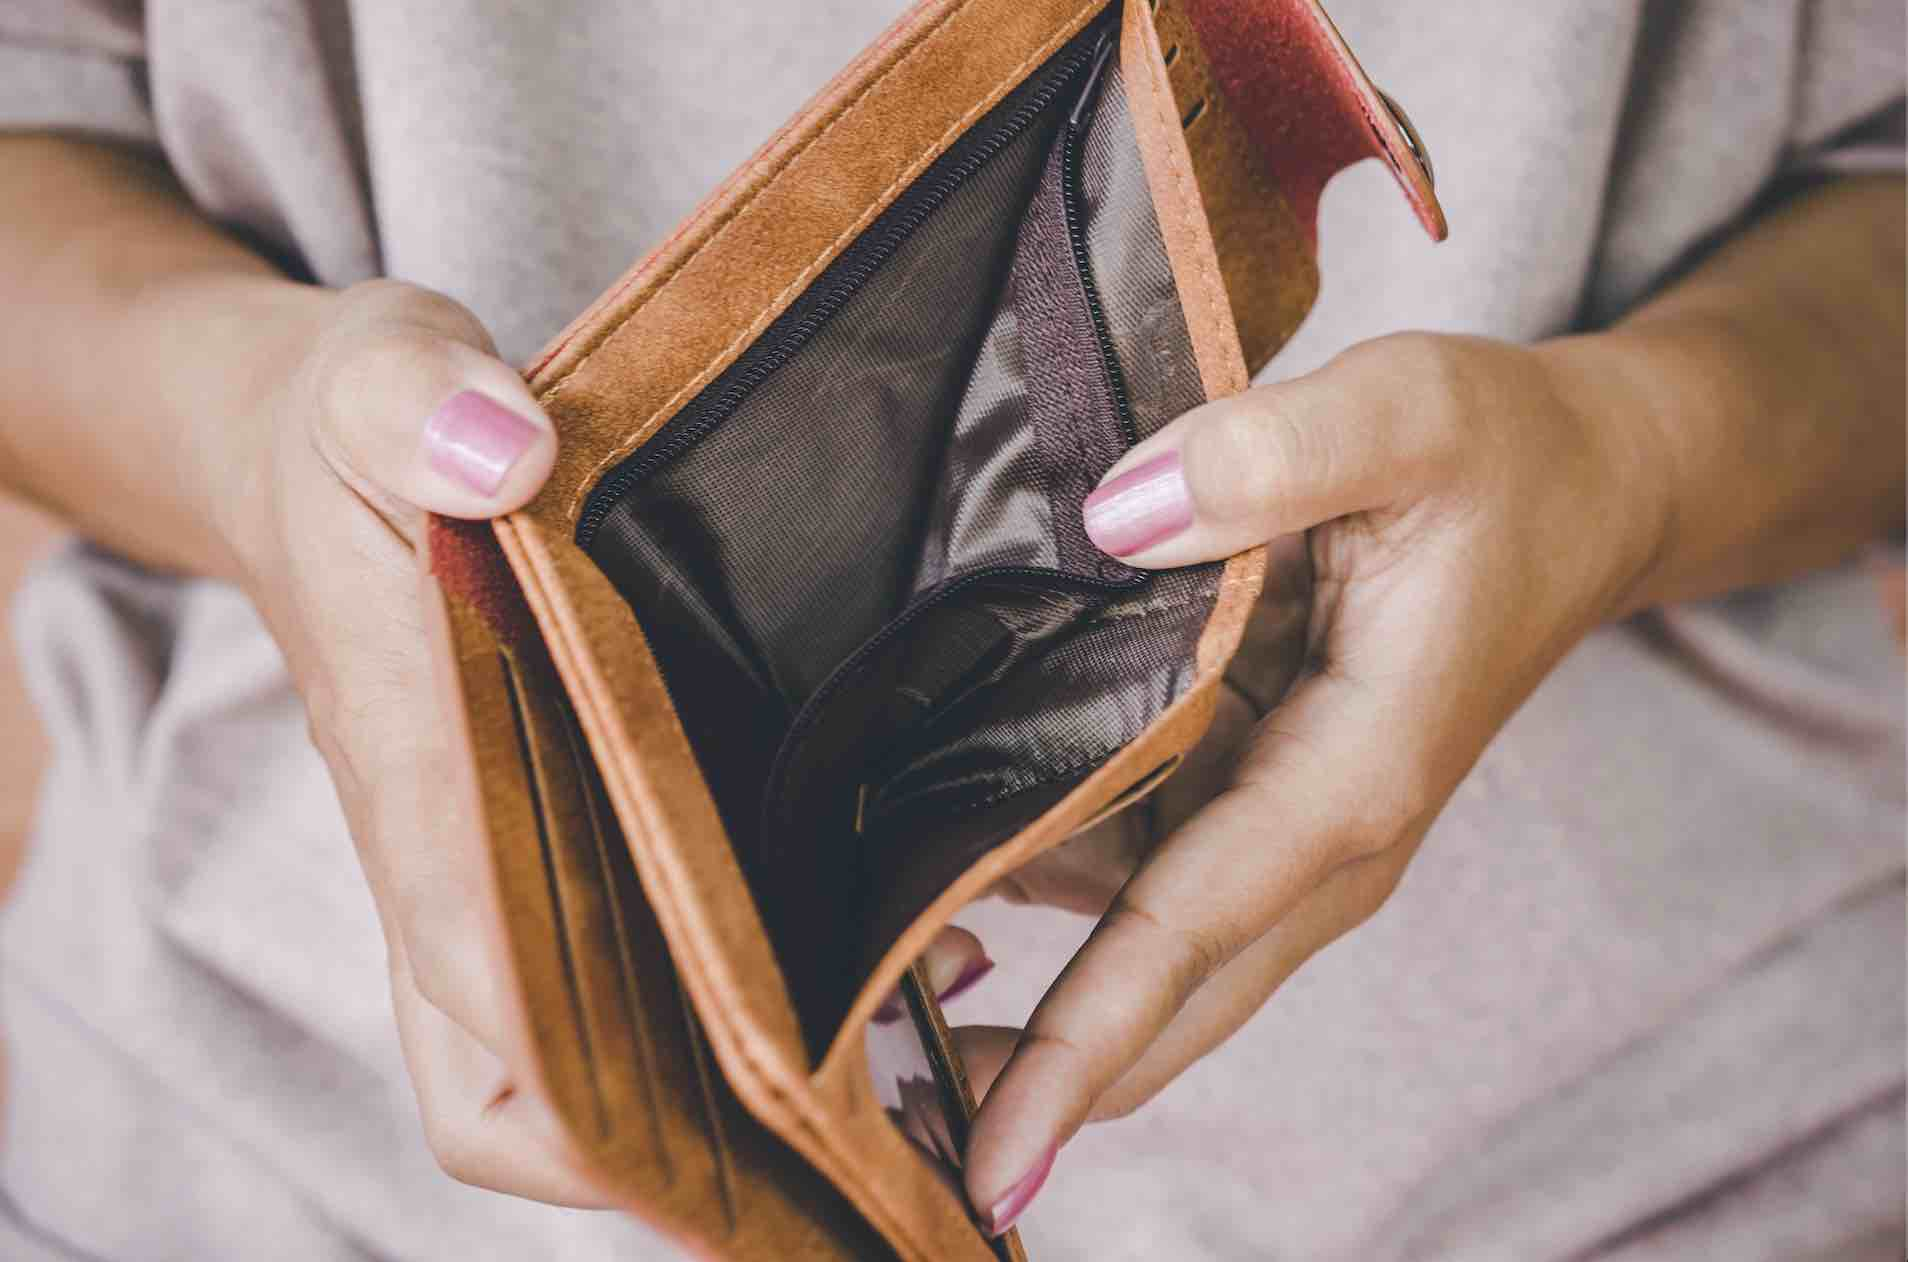 Top 3 Reasons Why People Go Broke And How To Avoid It